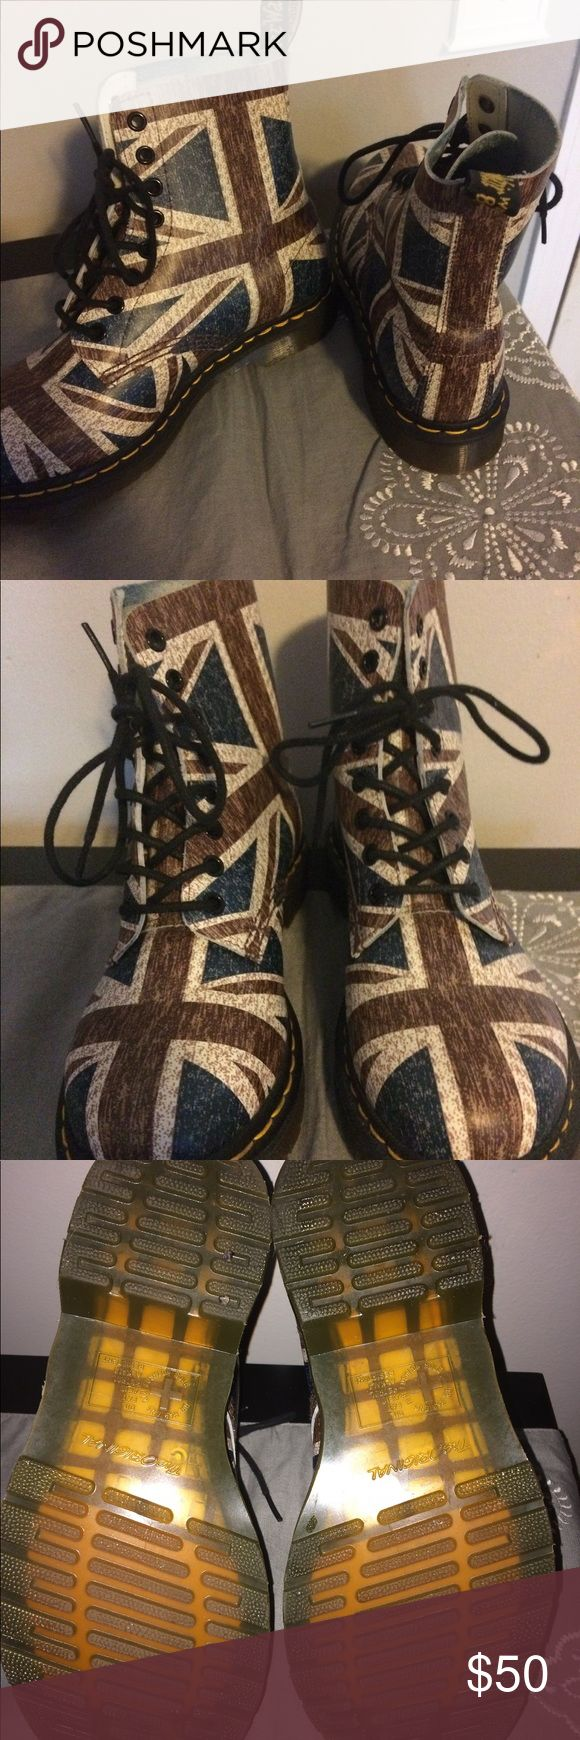 British flag Dr. Martens Maroon and dark blue. Only worn a handful of times. Great condition. Dr. Martens Shoes Ankle Boots & Booties